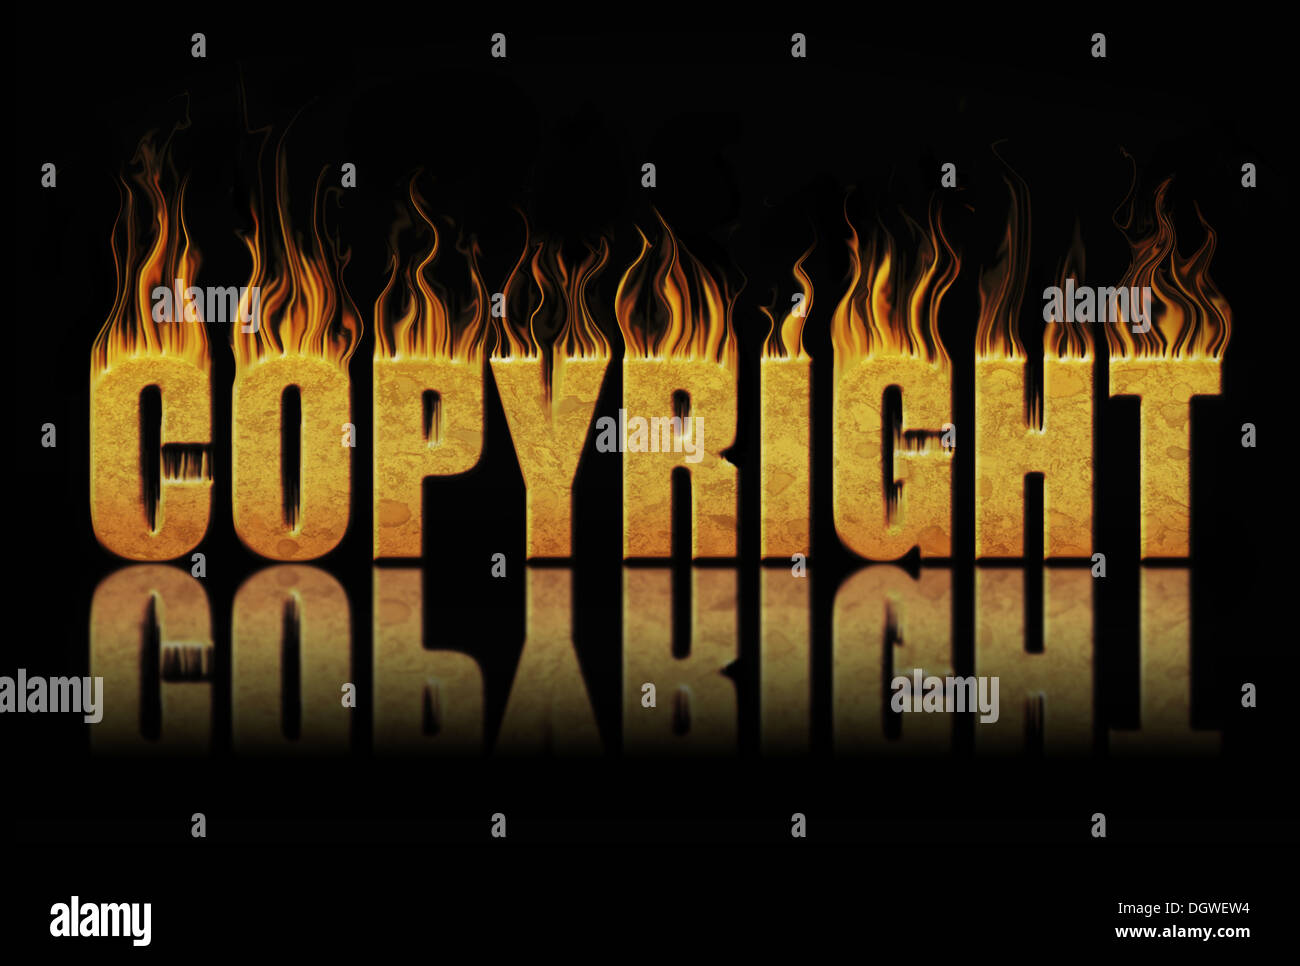 Copyright block of text in flames - Stock Image